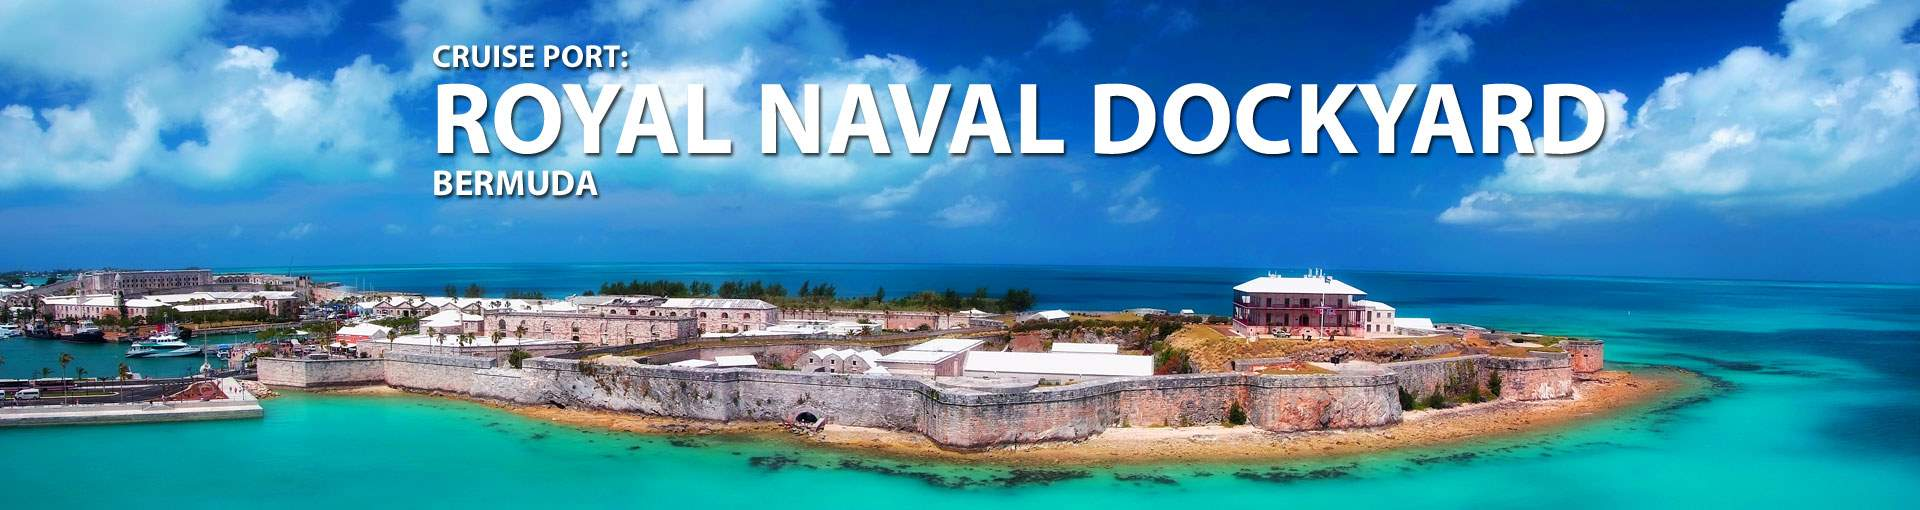 Cruises to Royal Naval Dockyard, Bermuda